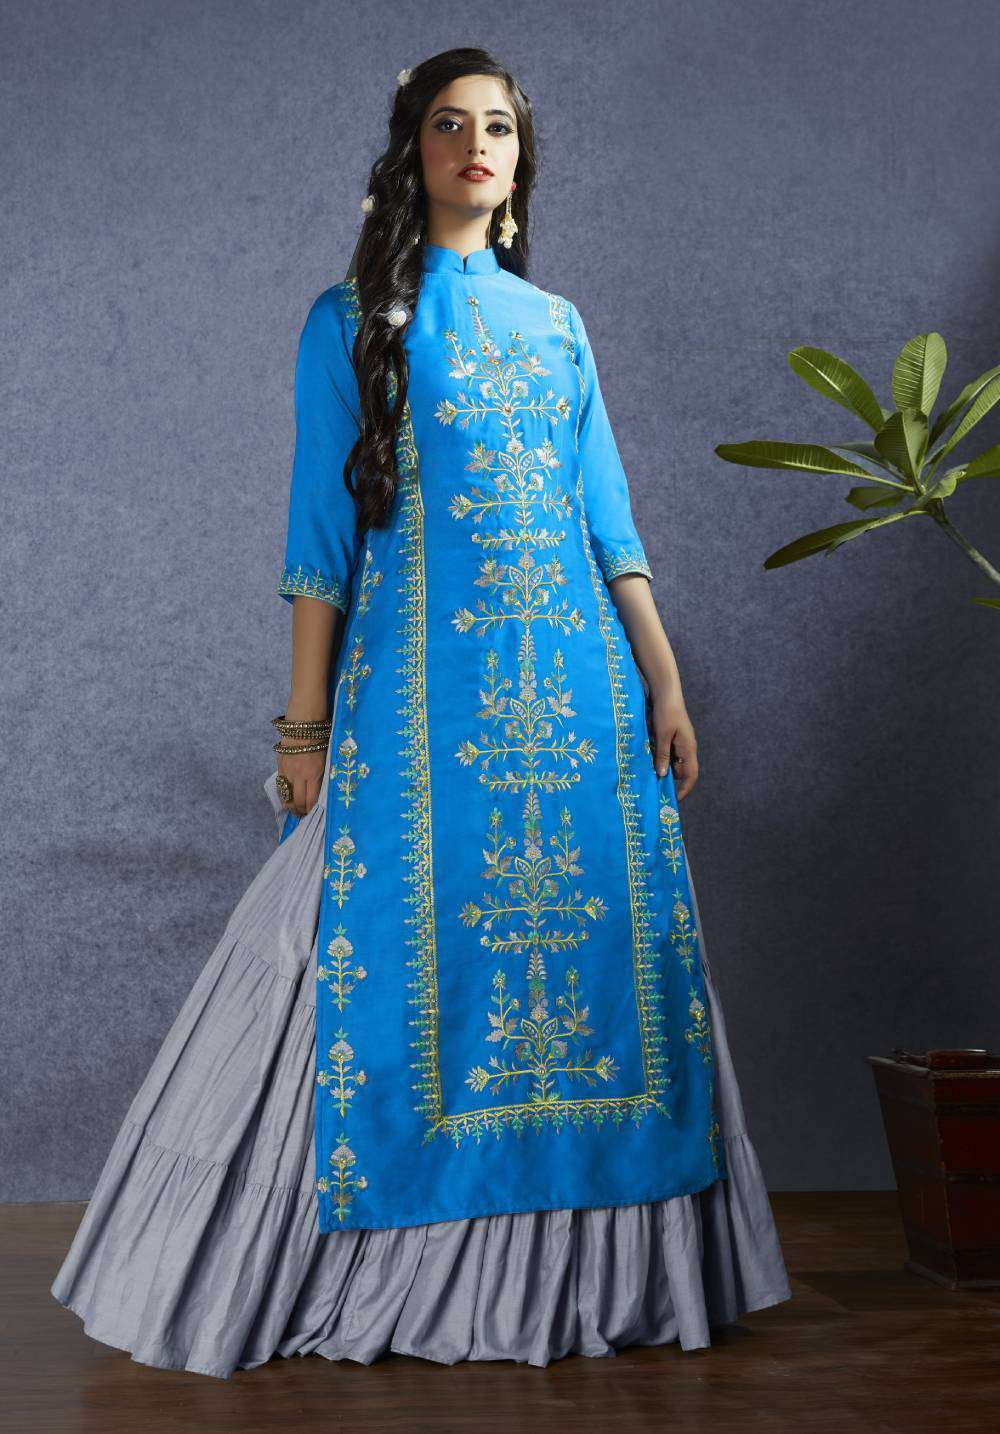 Blue Modal Satin Fabric Fancy Embroidery Salwar Kameez MYSK-1825